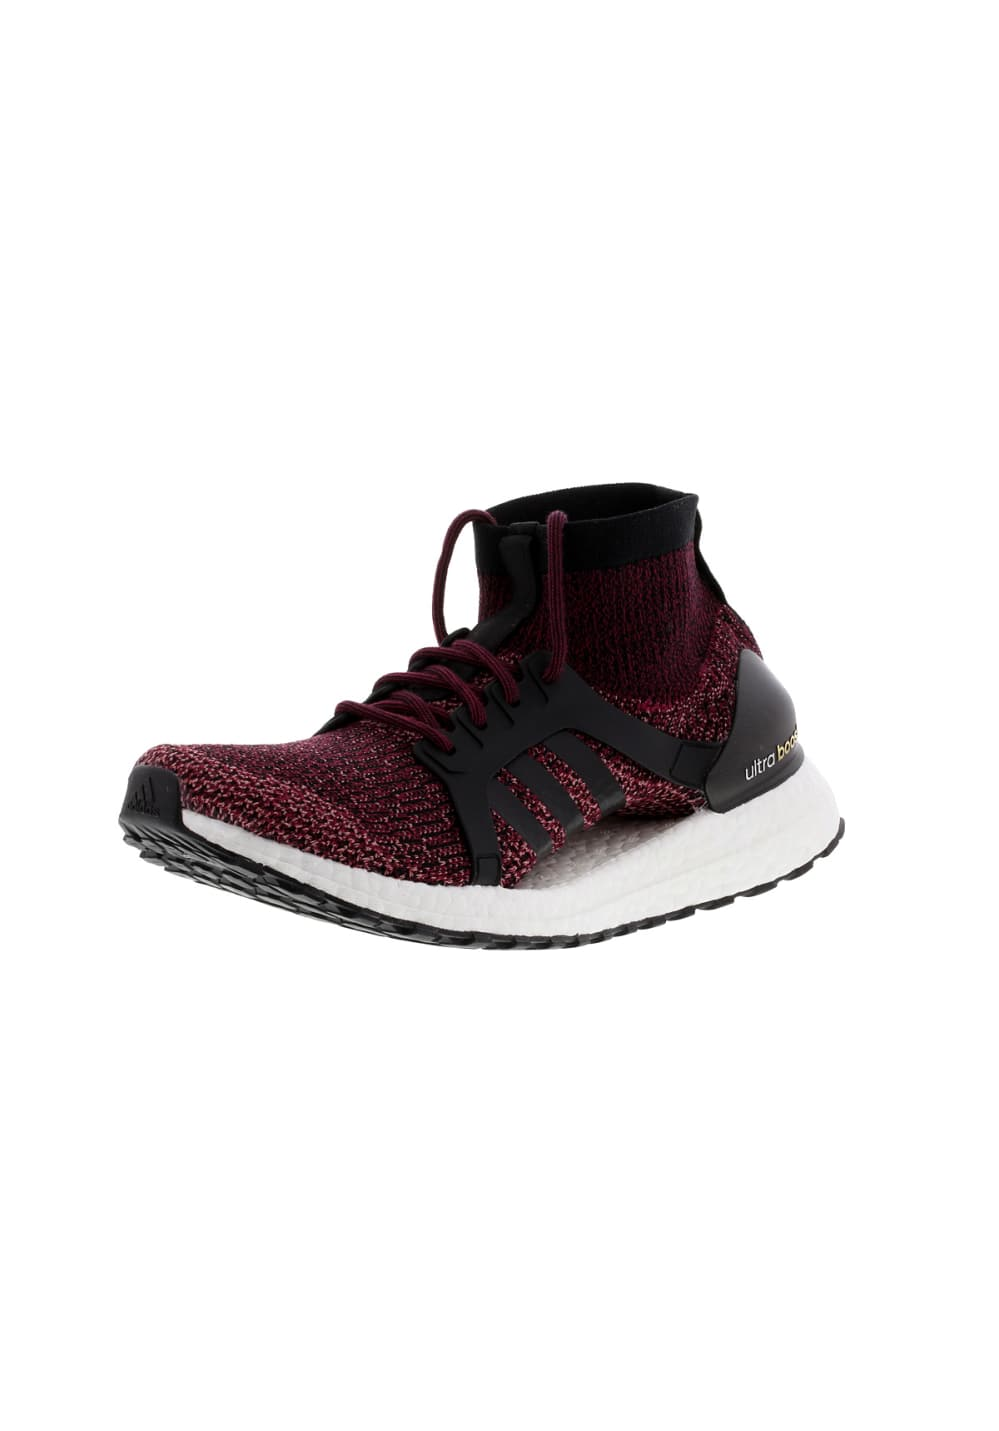 daac1d7a659 Next. -60%. adidas. UltraBOOST X ATR - Running shoes for Women